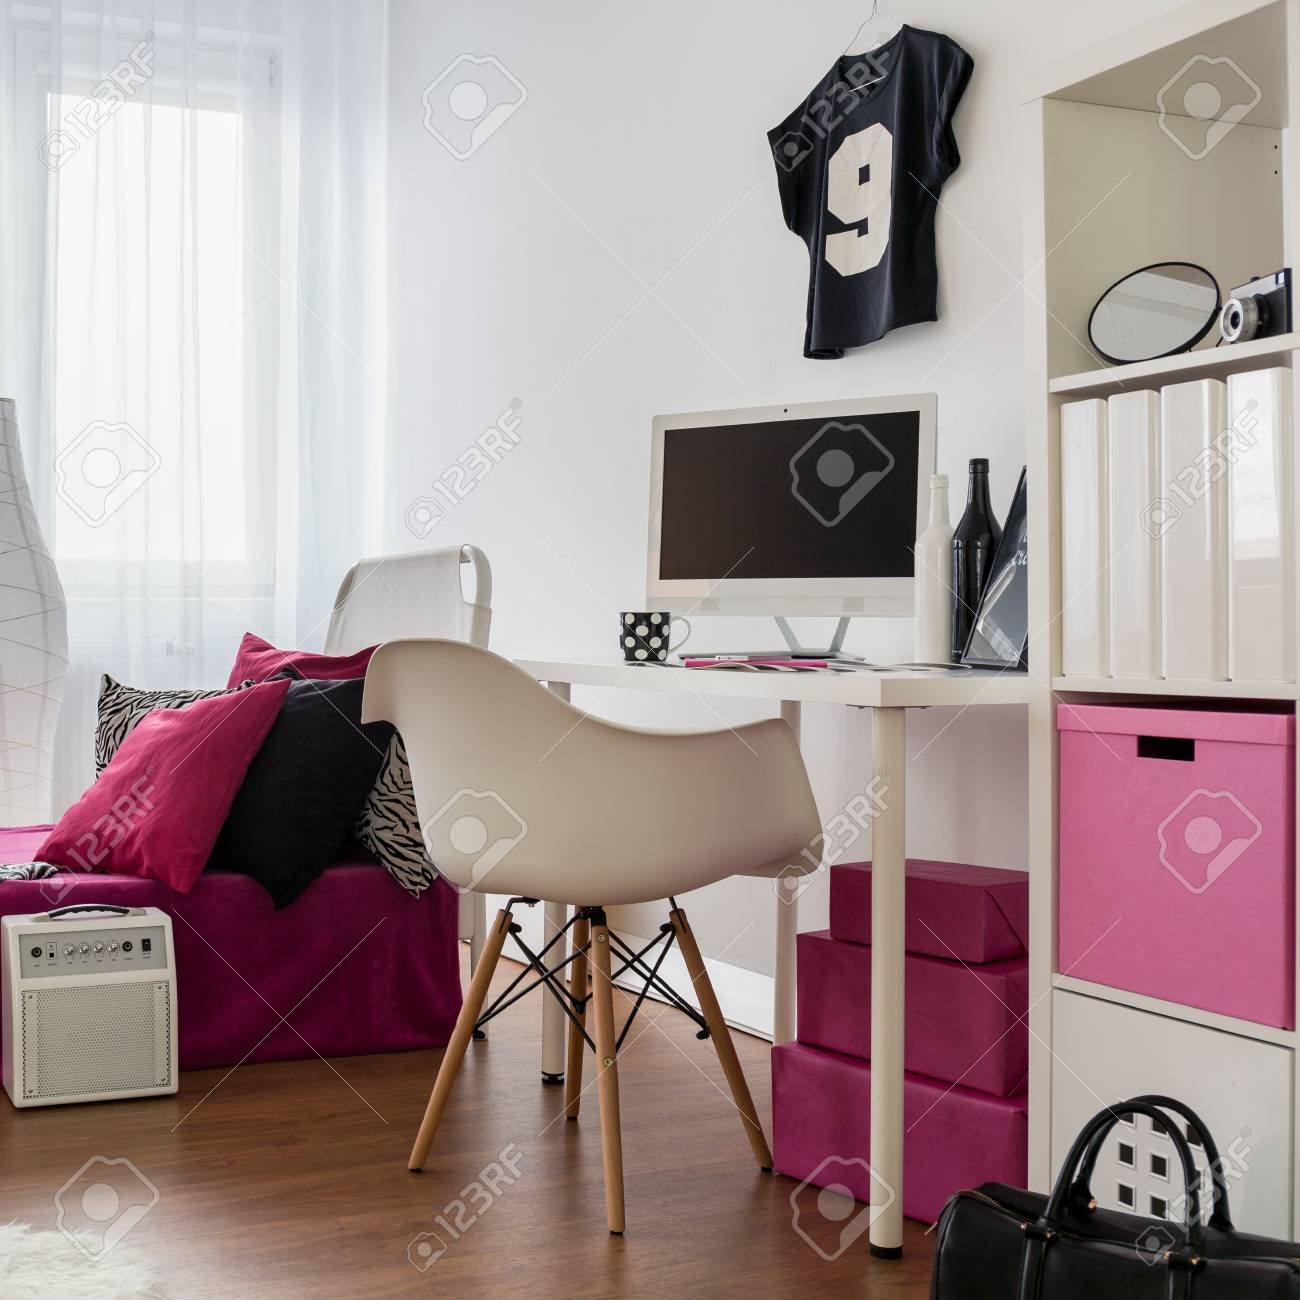 Bedroom and study room combined. Girly interior in black, pink..